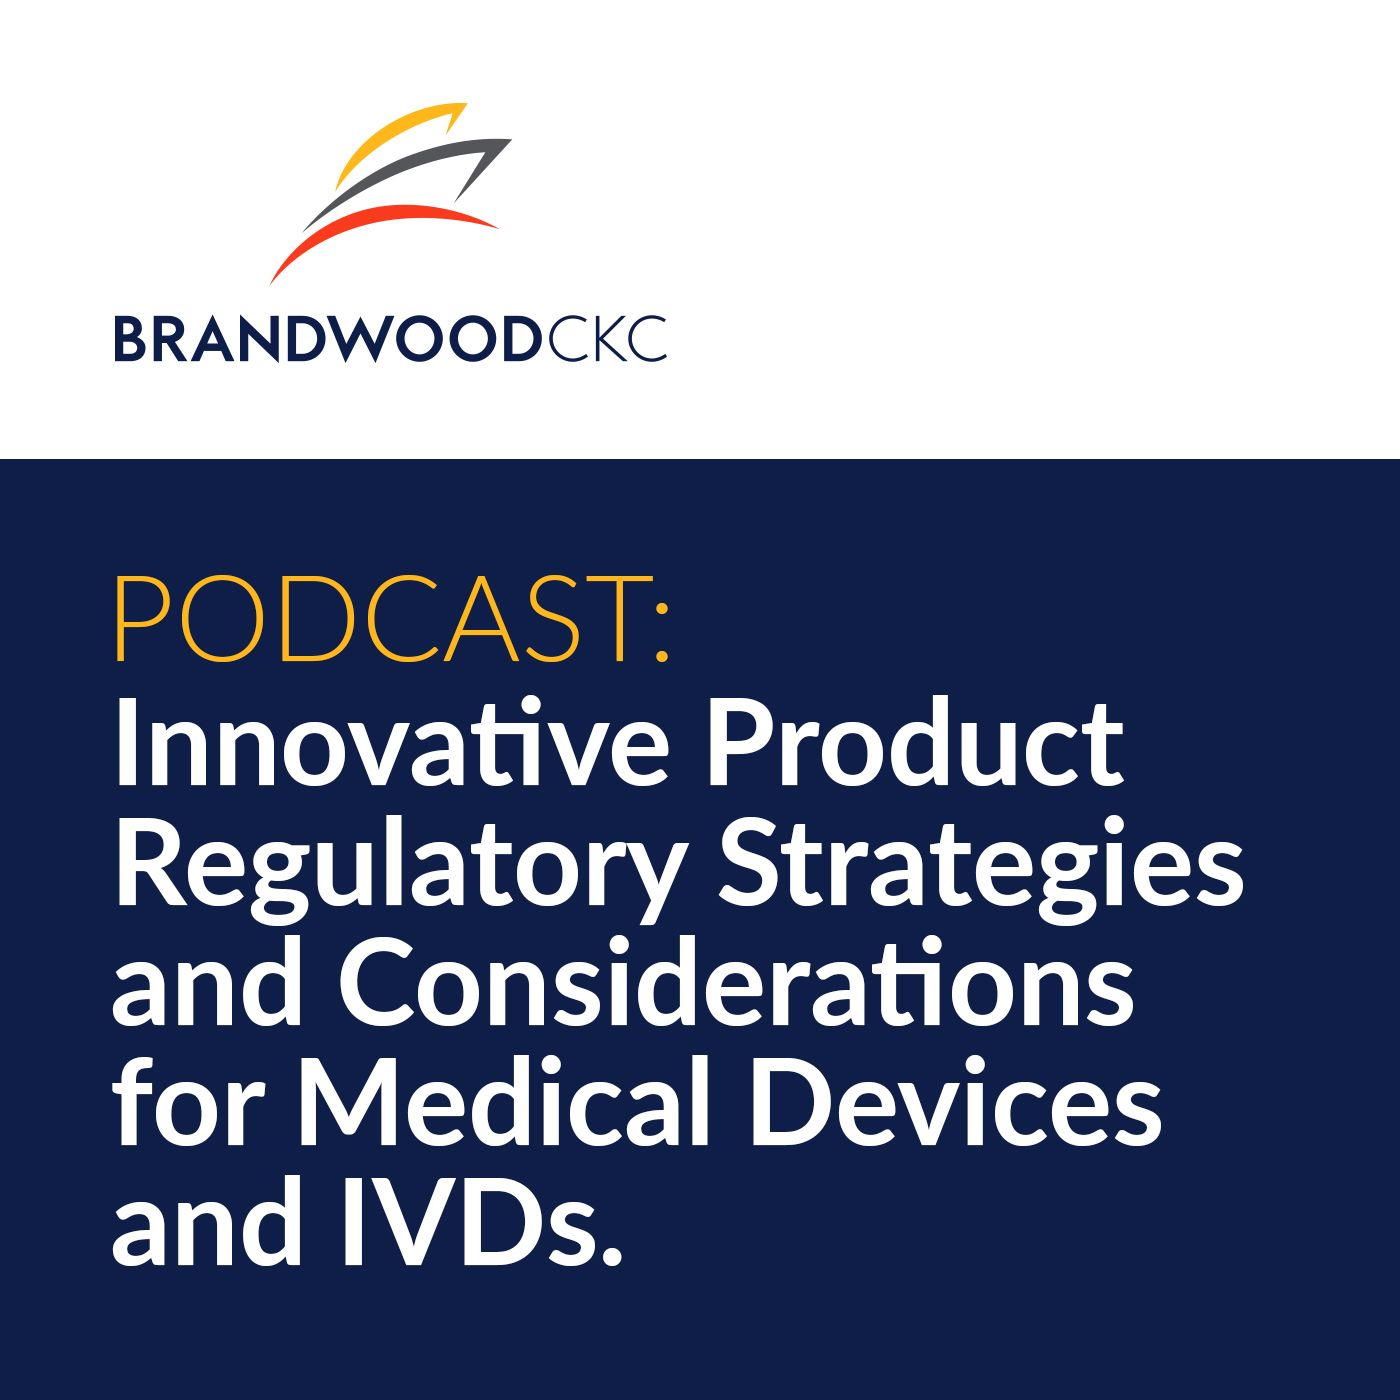 Innovative Product Regulatory Strategies and Considerations for Medical Devices and IVDs